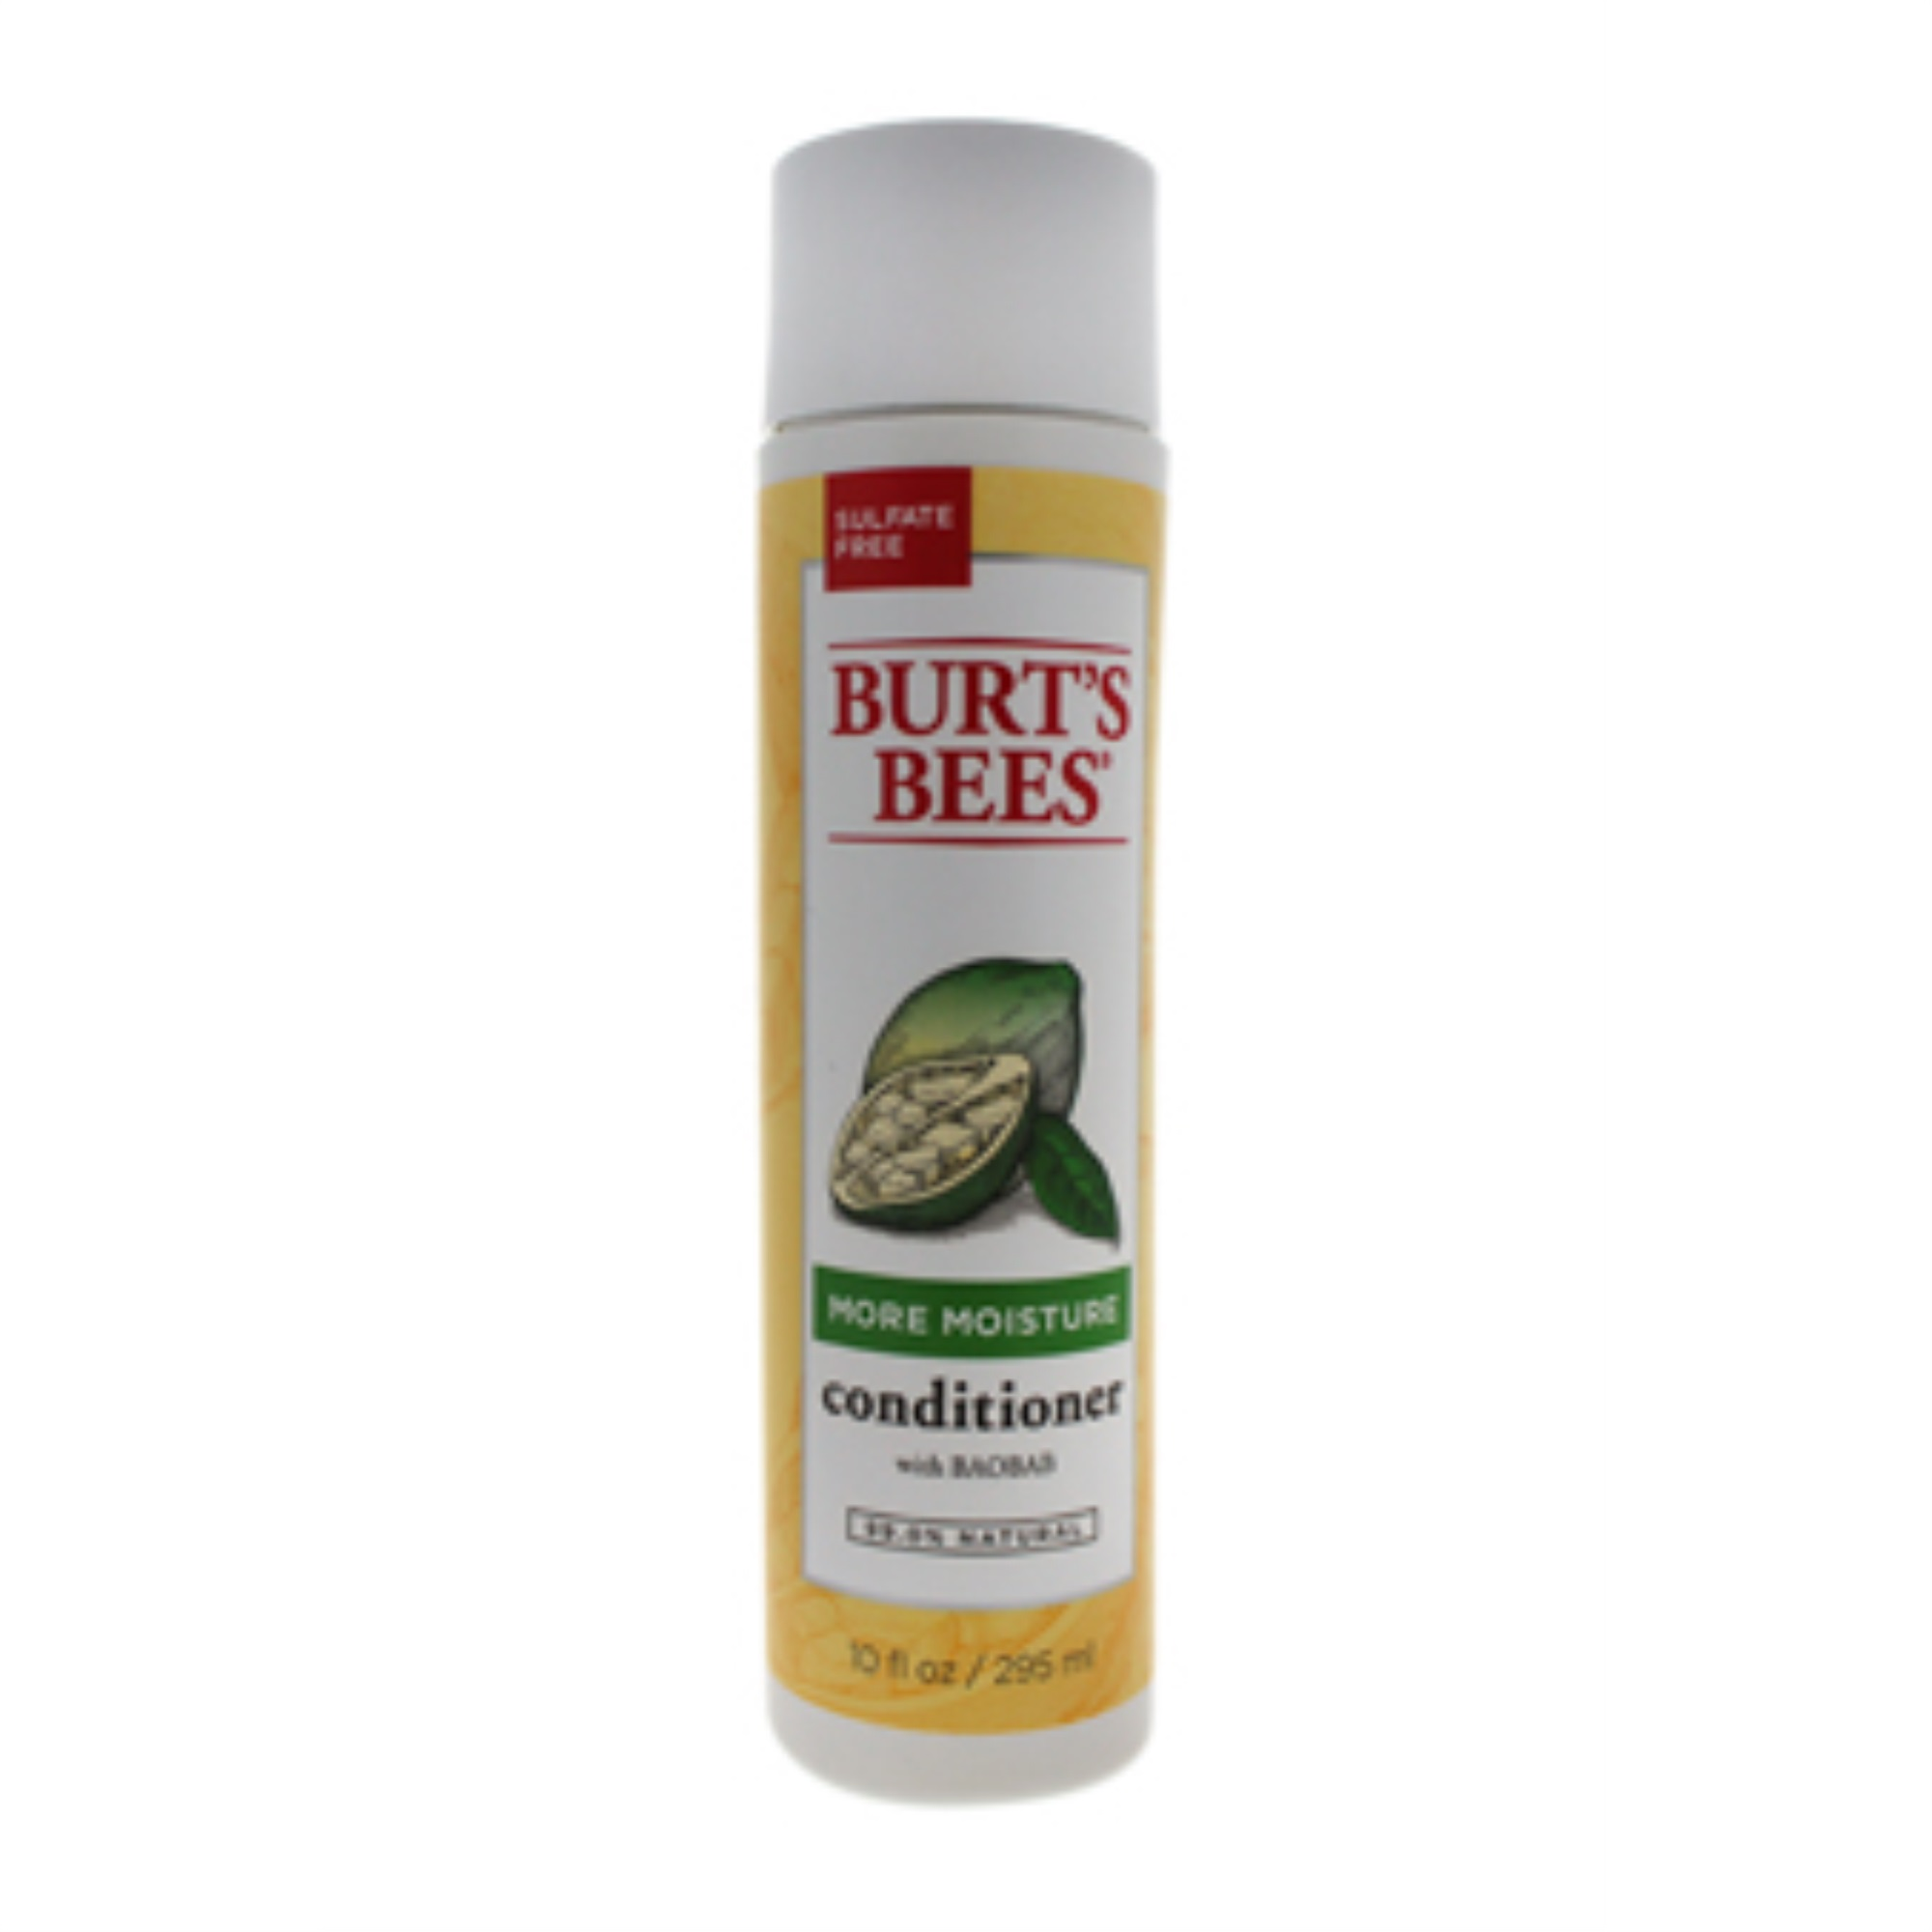 More Moisture Baobab Conditioner by Burt's Bees for Unisex - 10 oz Conditioner - image 1 of 3